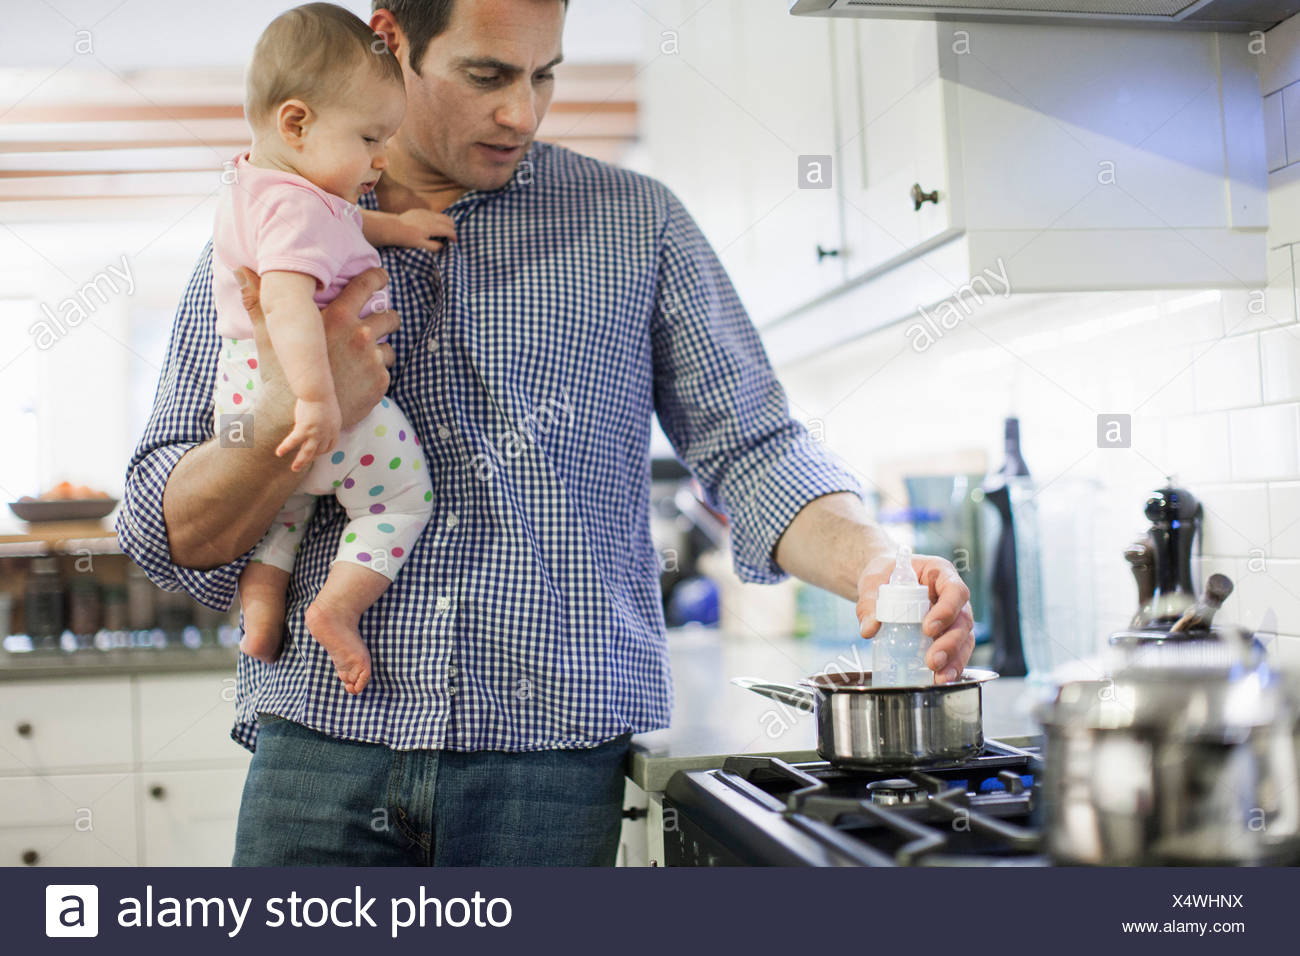 Father heating up baby bottle - Stock Image